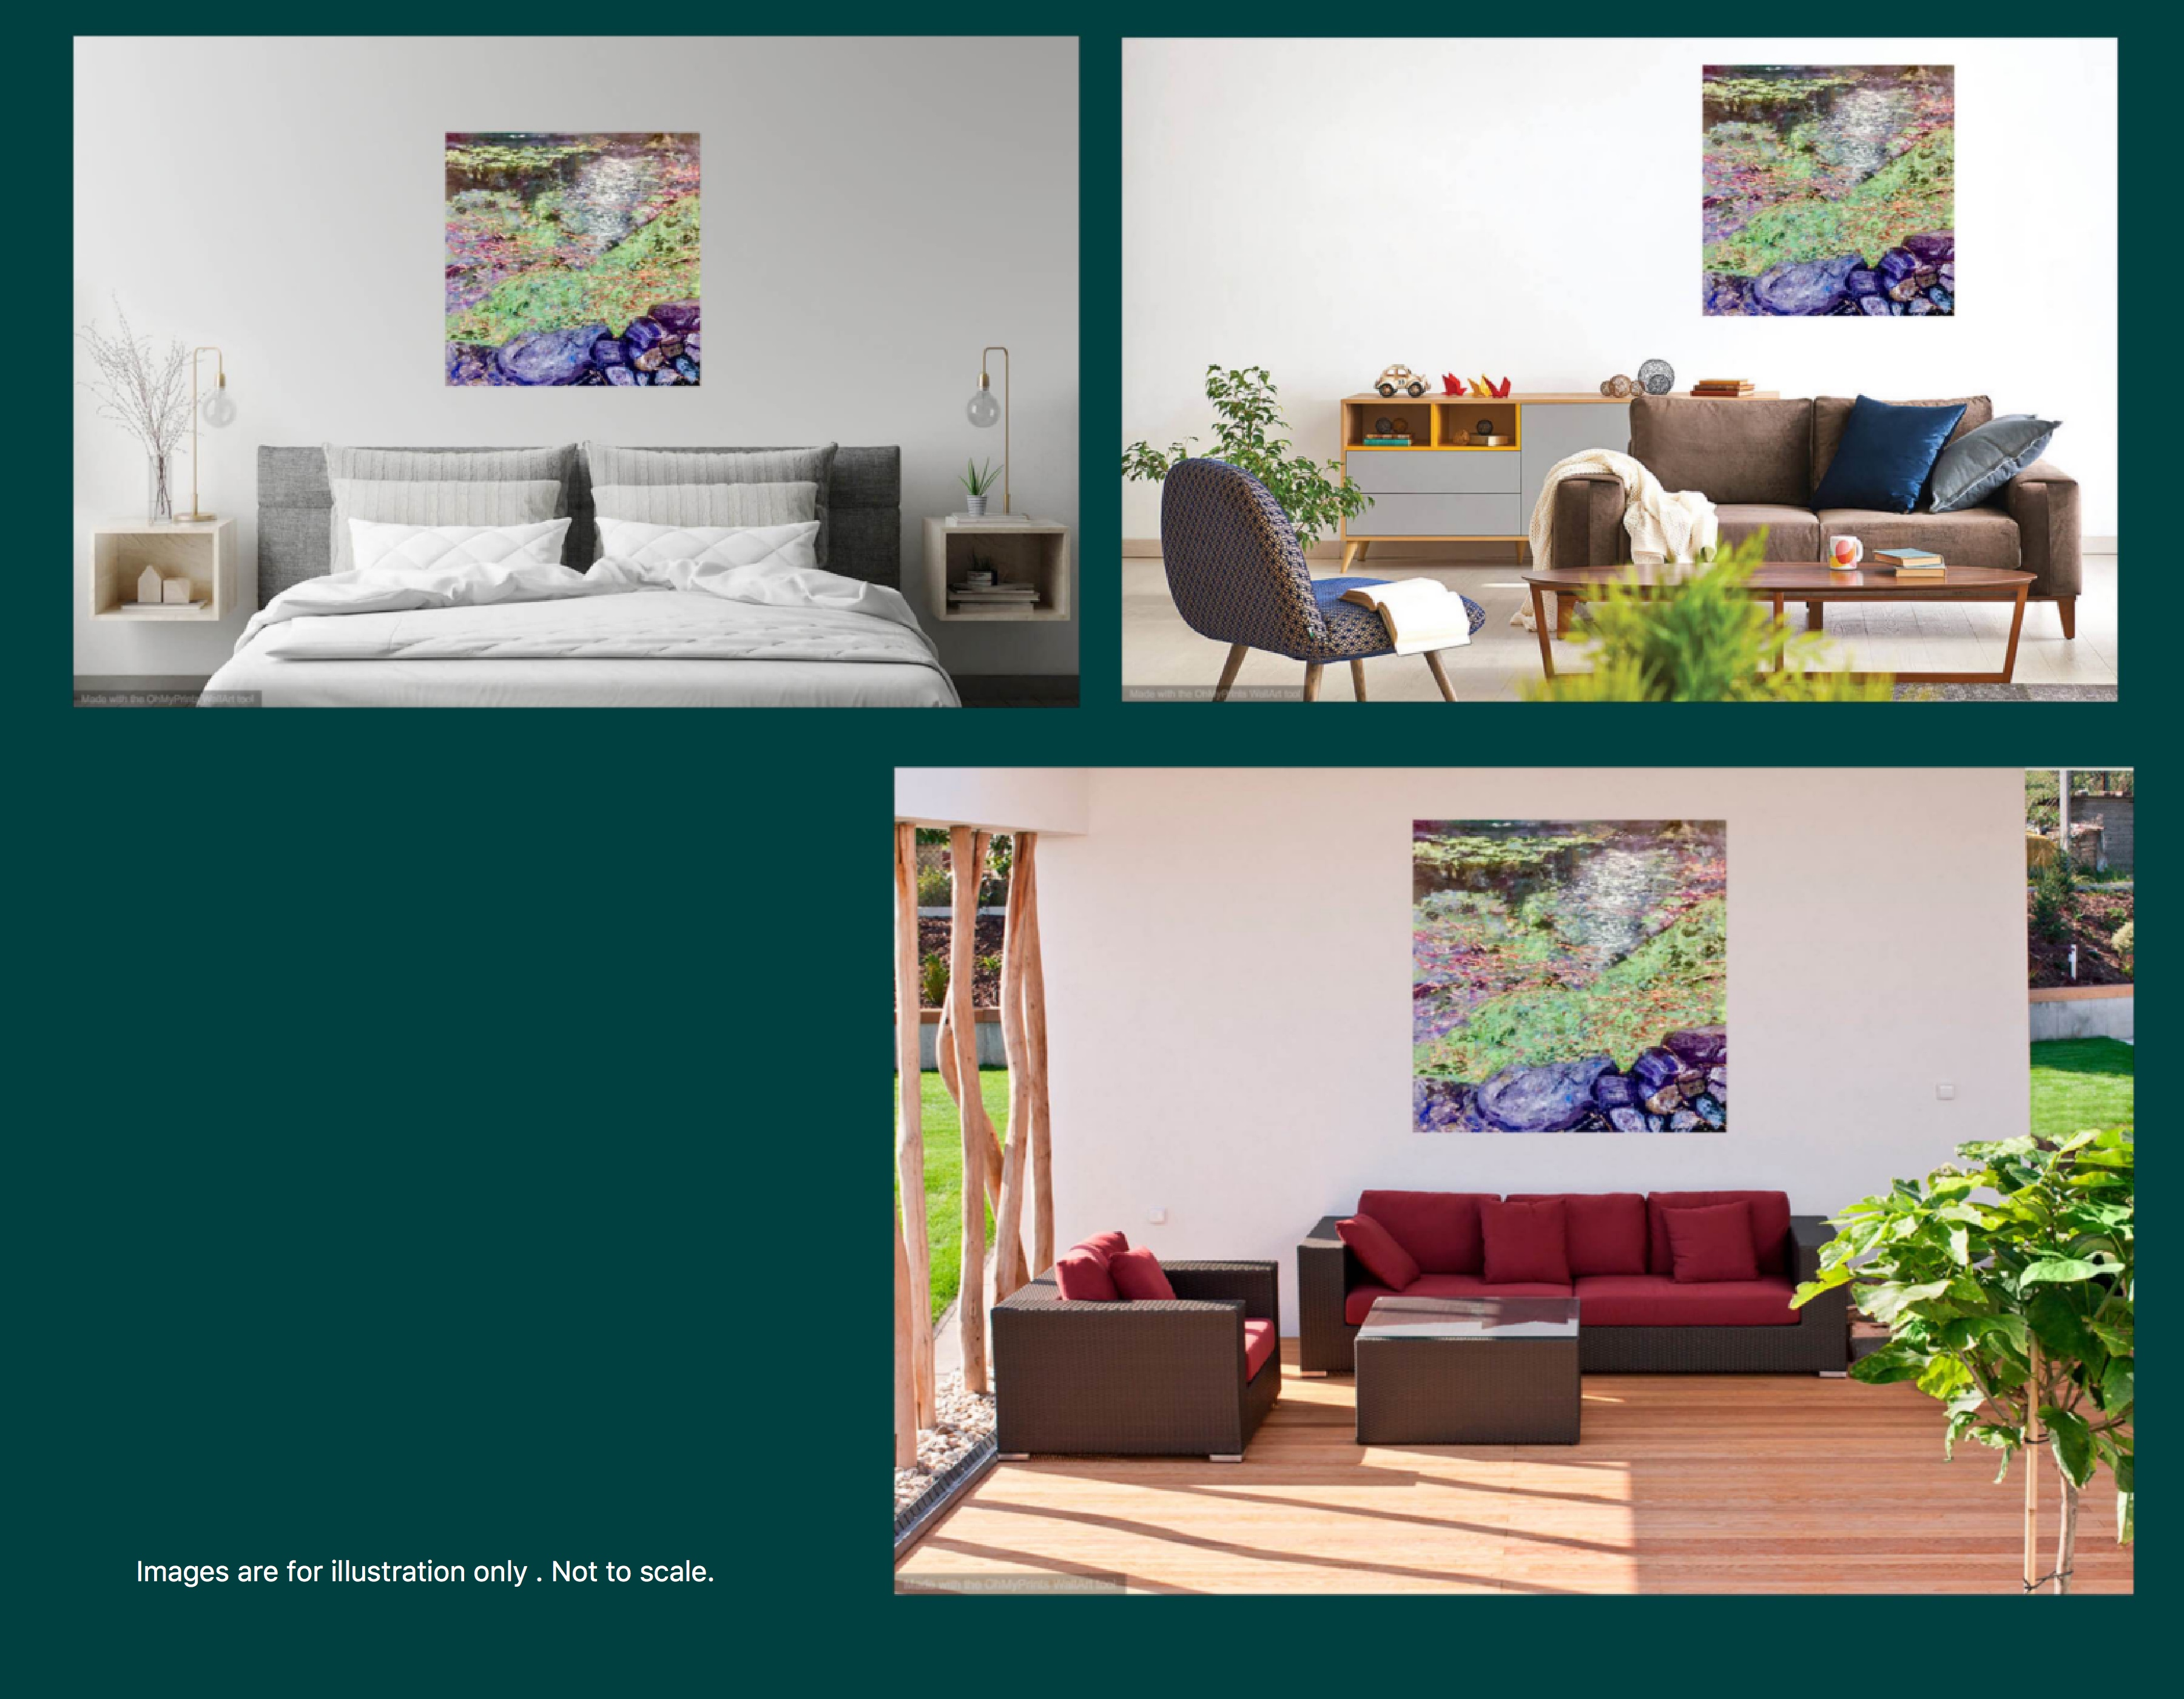 Pool of peace decor layout_Fotor.jpg